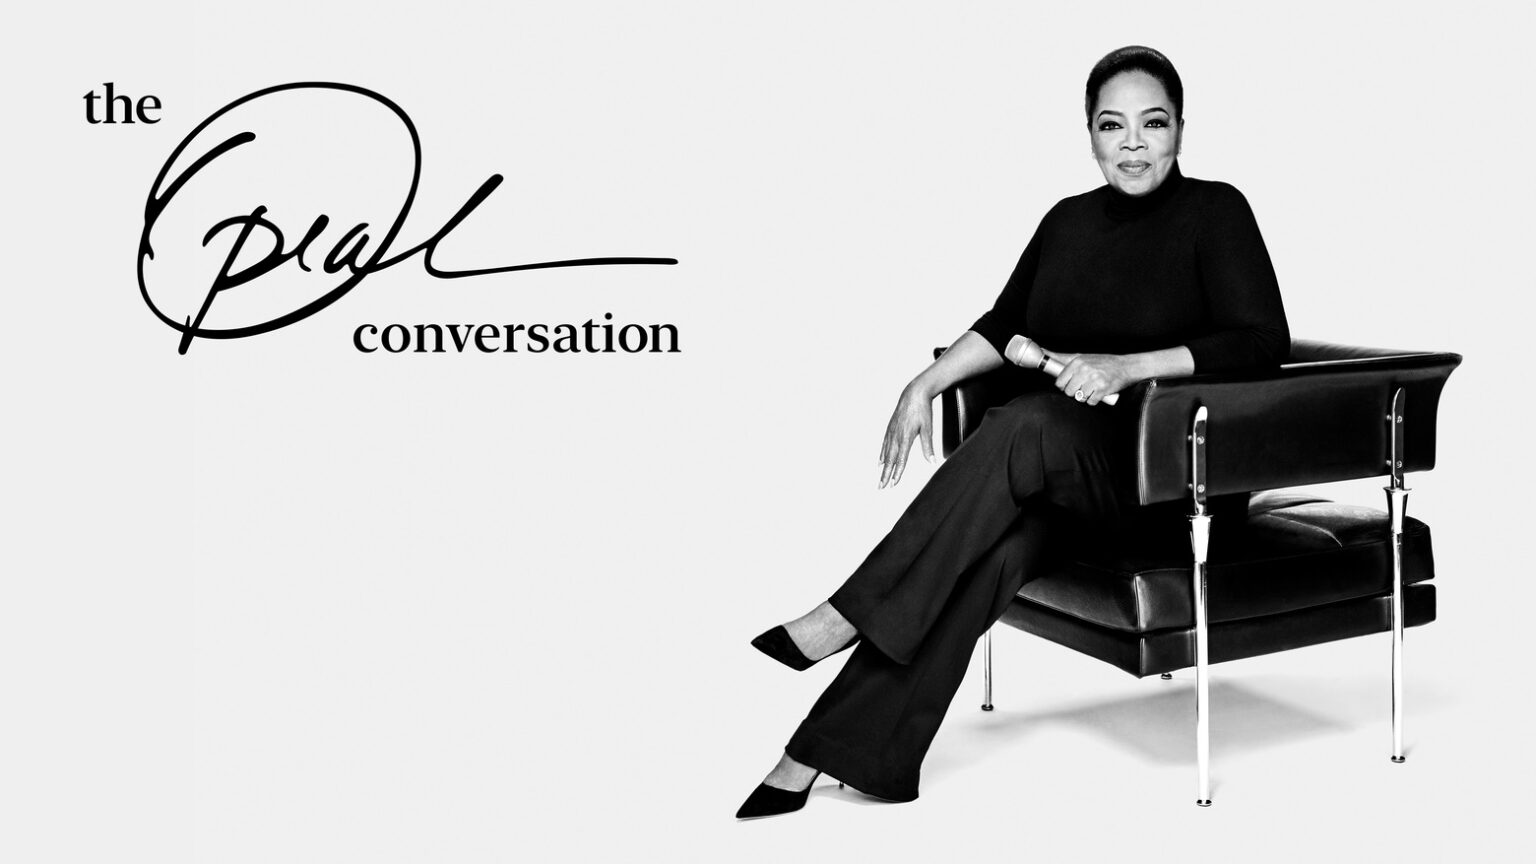 Oprah Winfrey interviews thought leaders in an Apple TV+ series debuting Thursday, July 30. 'The Oprah Conversation' hits Apple TV+ this week.